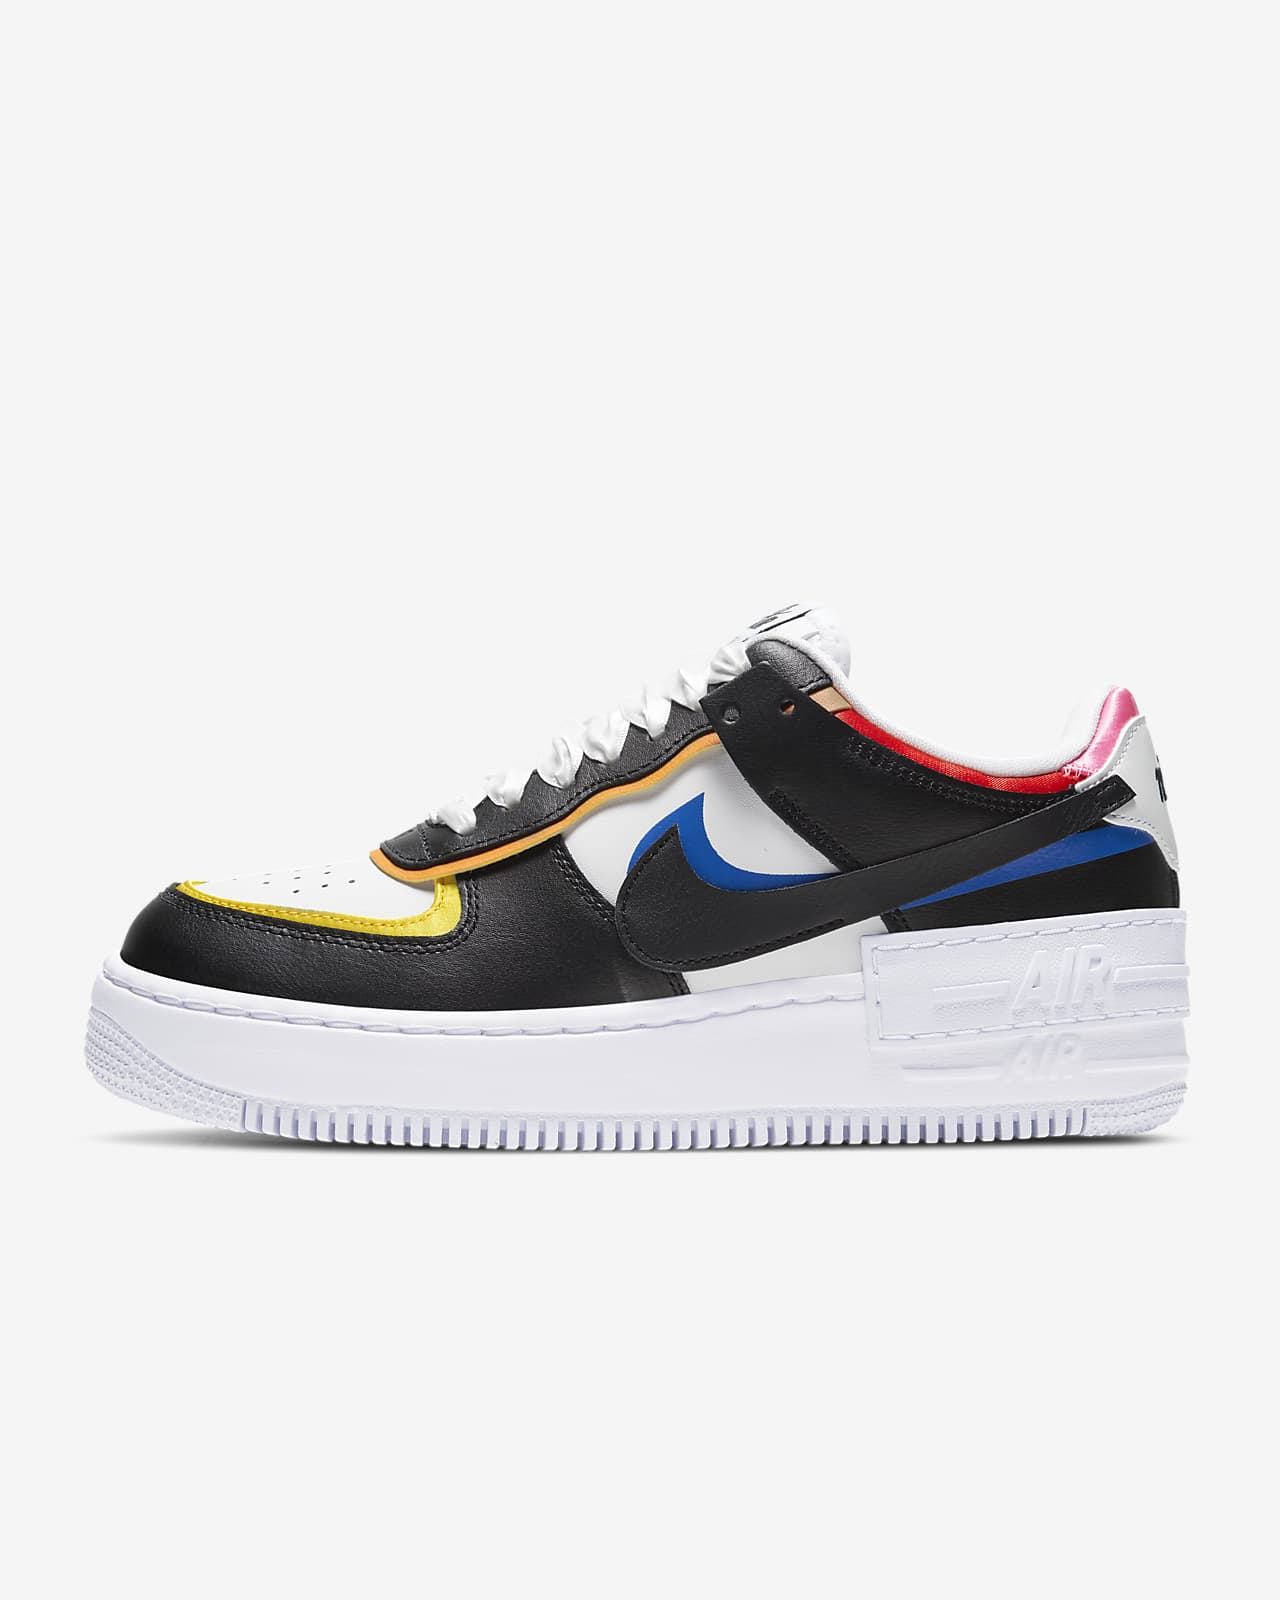 Sko Nike Air Force 1 Shadow för kvinnor